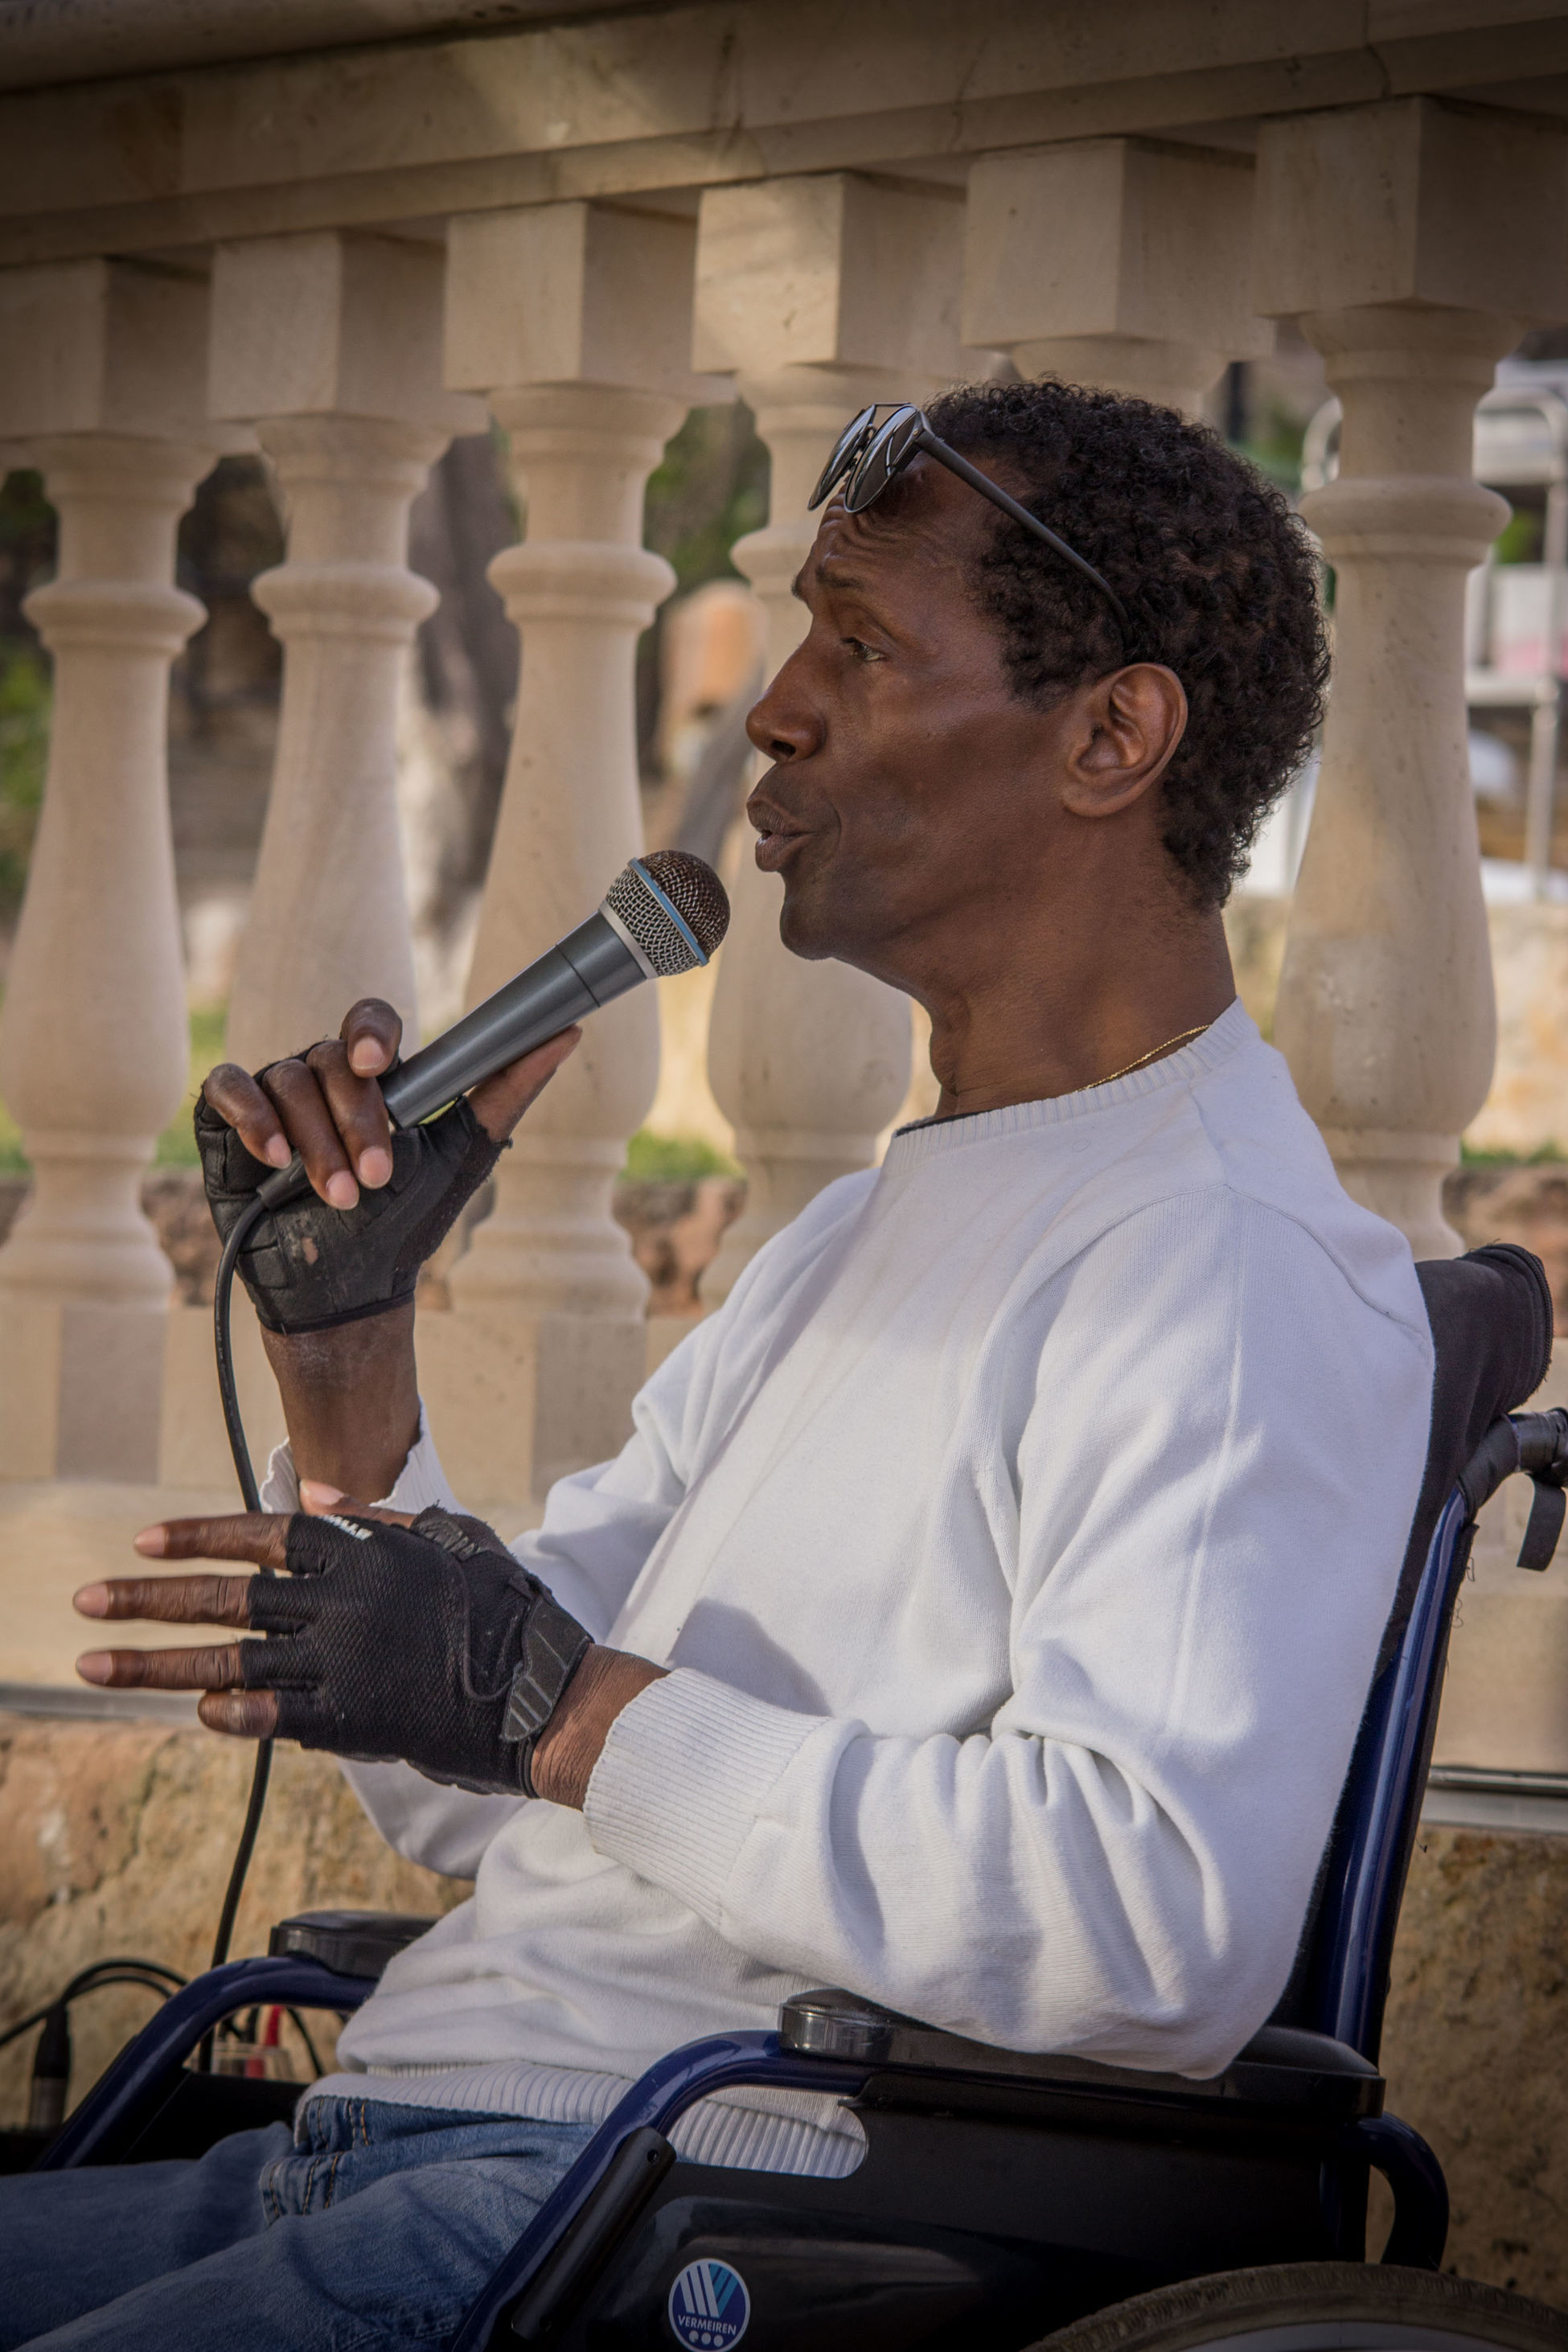 Black People Charles Role Concert Live Live Music Mallorca Musician One Person Peguera People Real People Singer  Sitting Wheelchair The Portraitist - 2017 EyeEm Awards